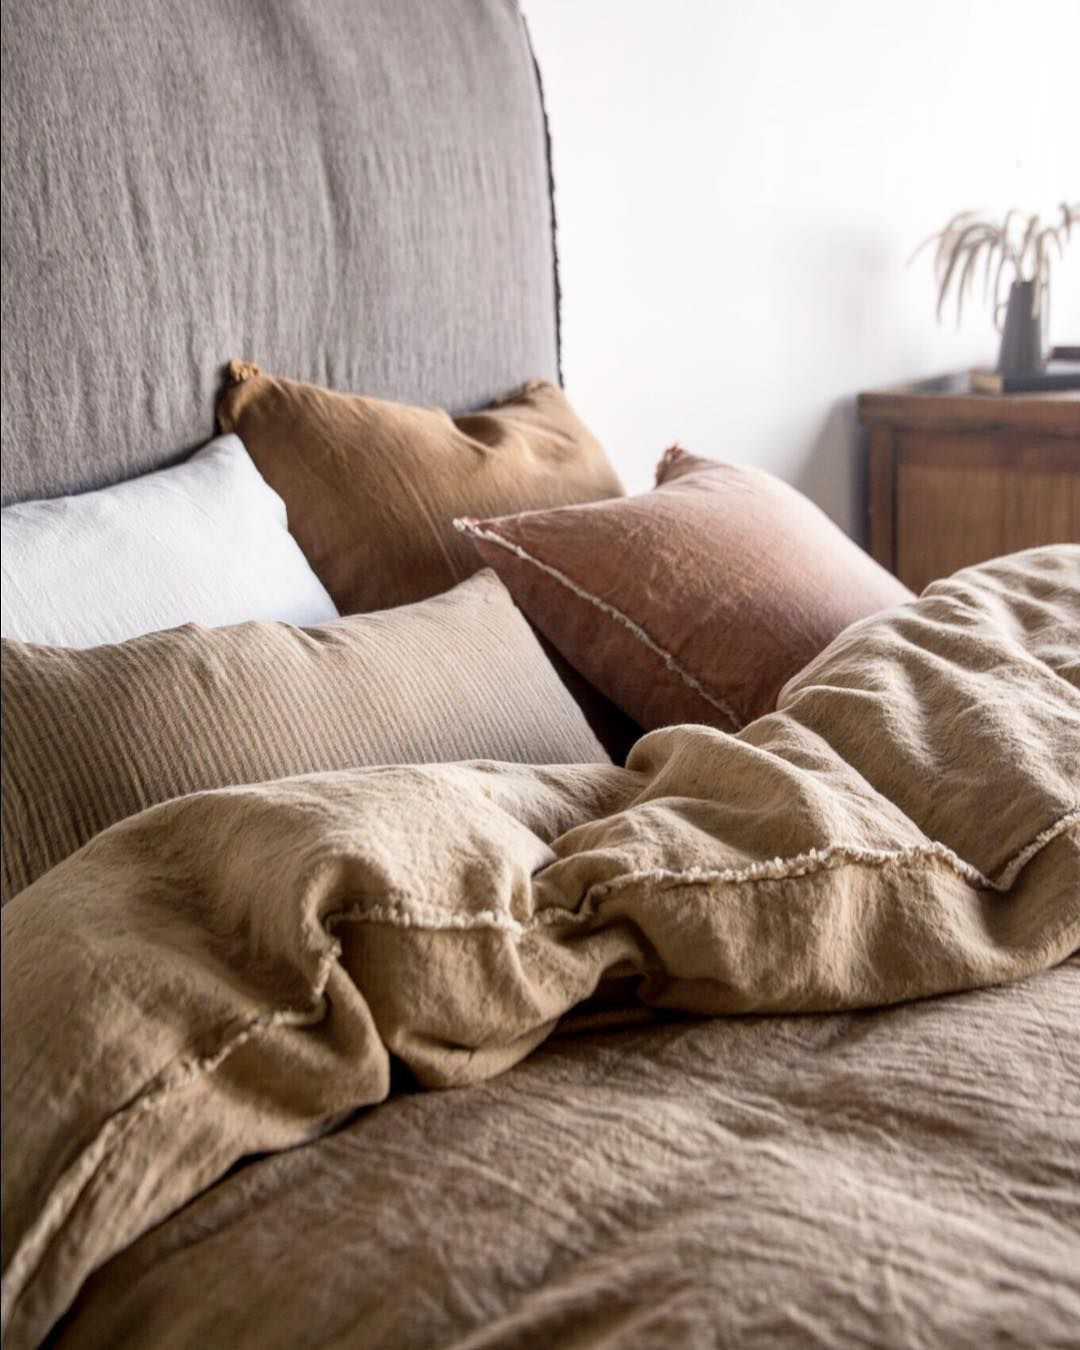 Rise And Shine With Our Pure Linen Bedding Collection Our Entire Linen Range Is Grown Spun Woven And Sewn Only Pure Linen Bedding Linen Bedding Linen Sheets